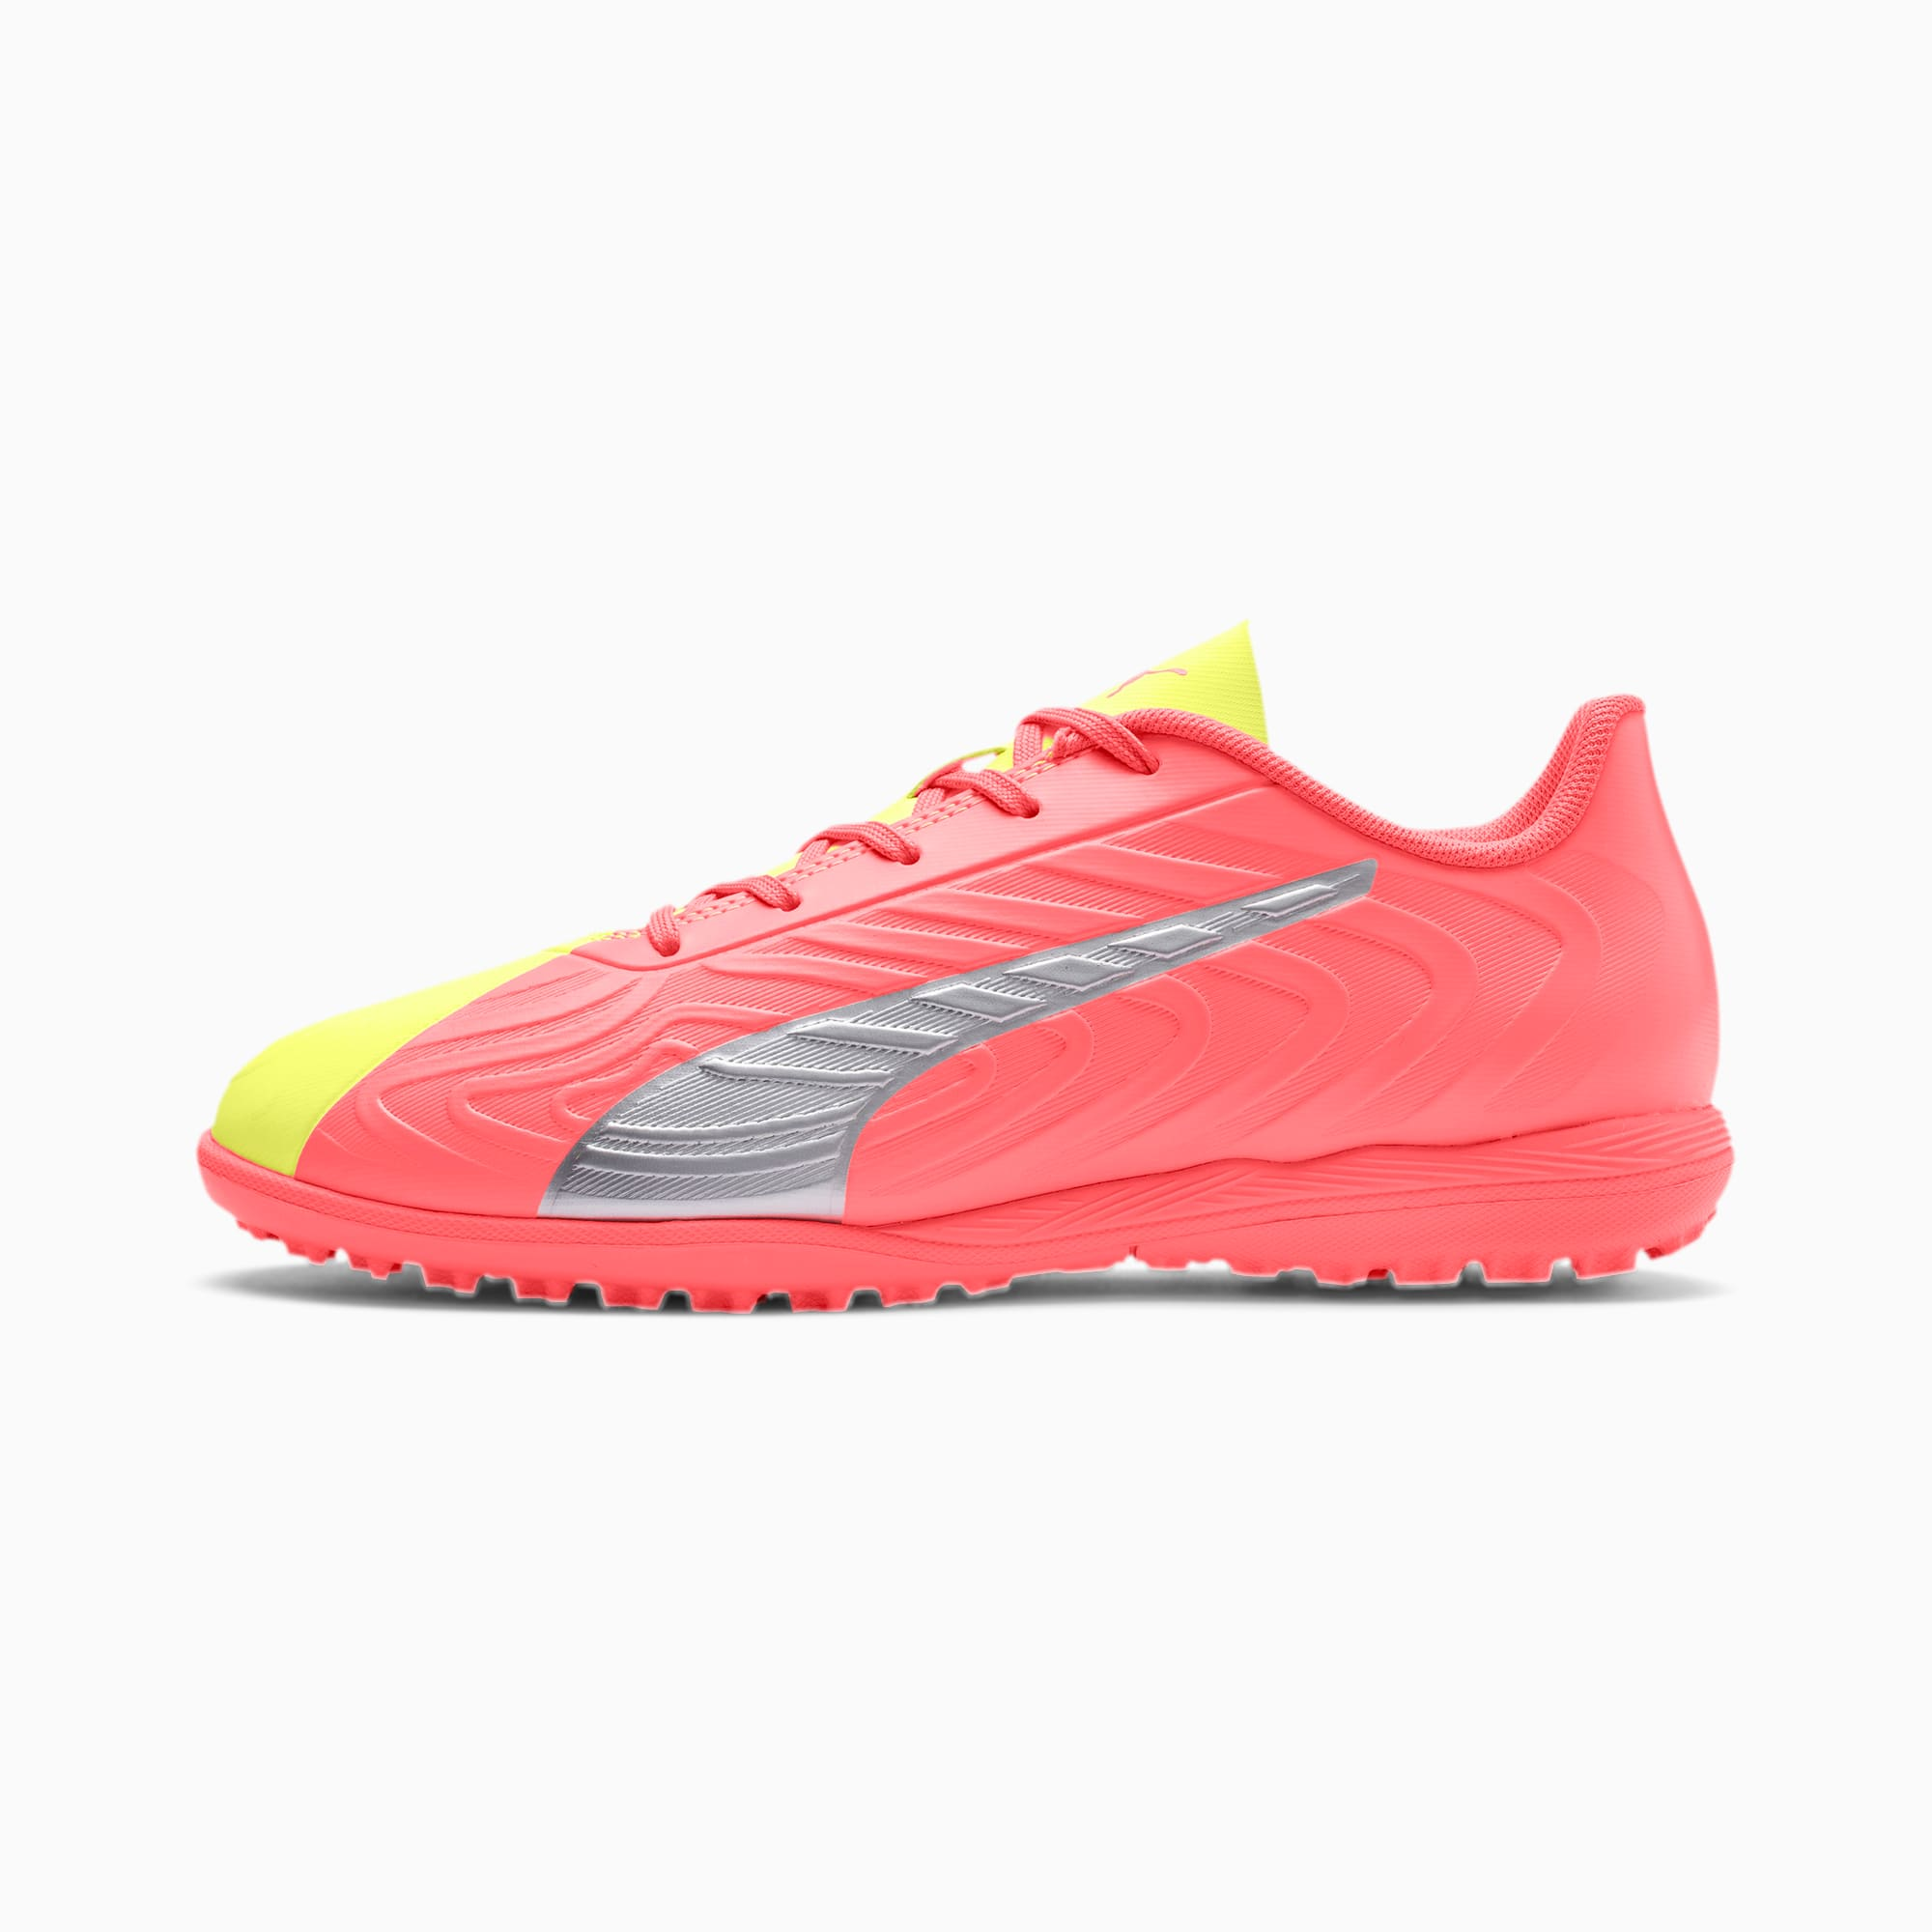 PUMA ONE 20.4 OSG TT Soccer Shoes JR